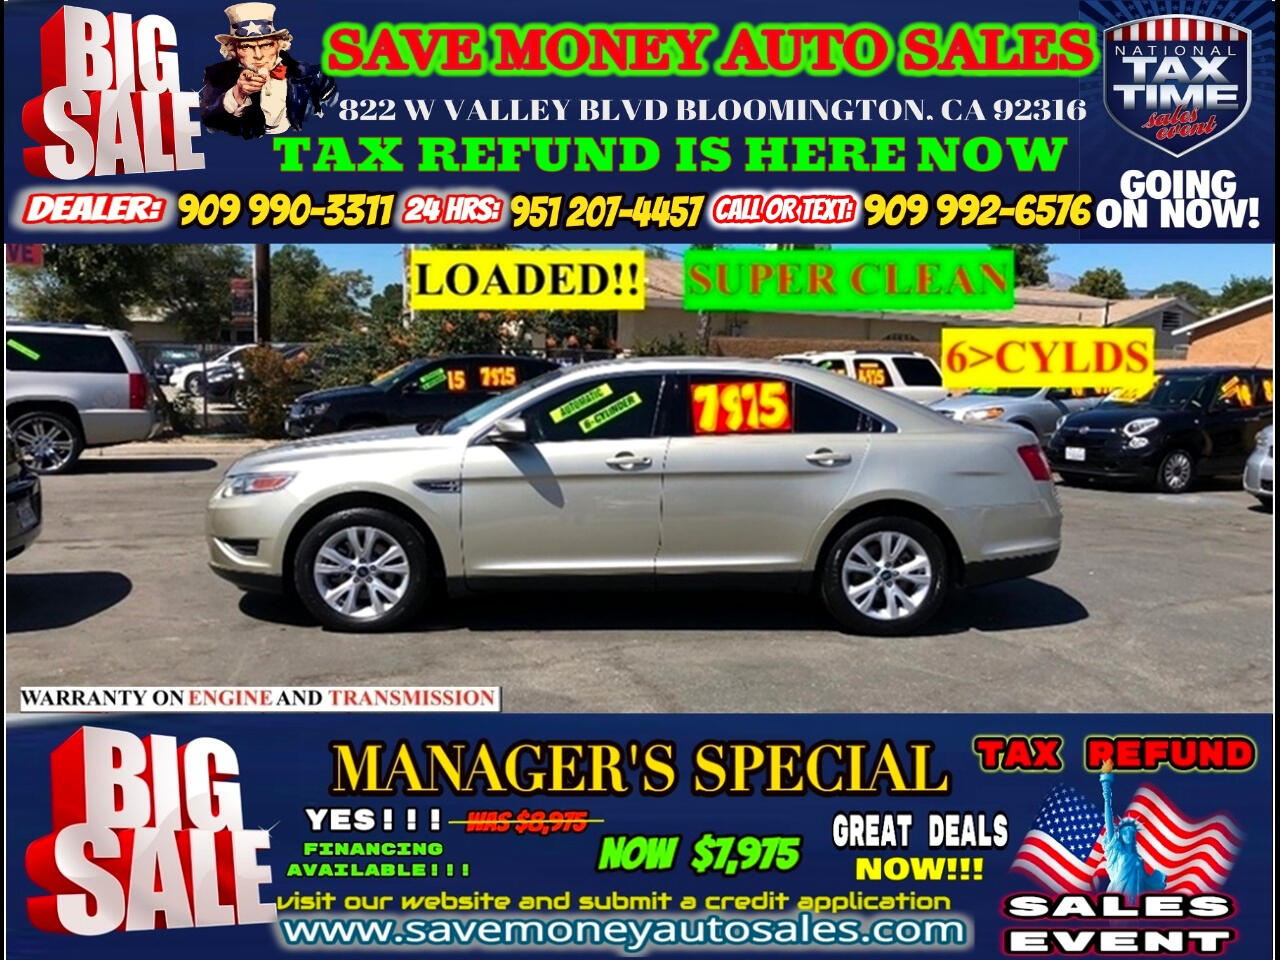 2011 Ford Taurus SEL FWD>>> FULLY LOADED WE MEAN IT!!! PLUS V6